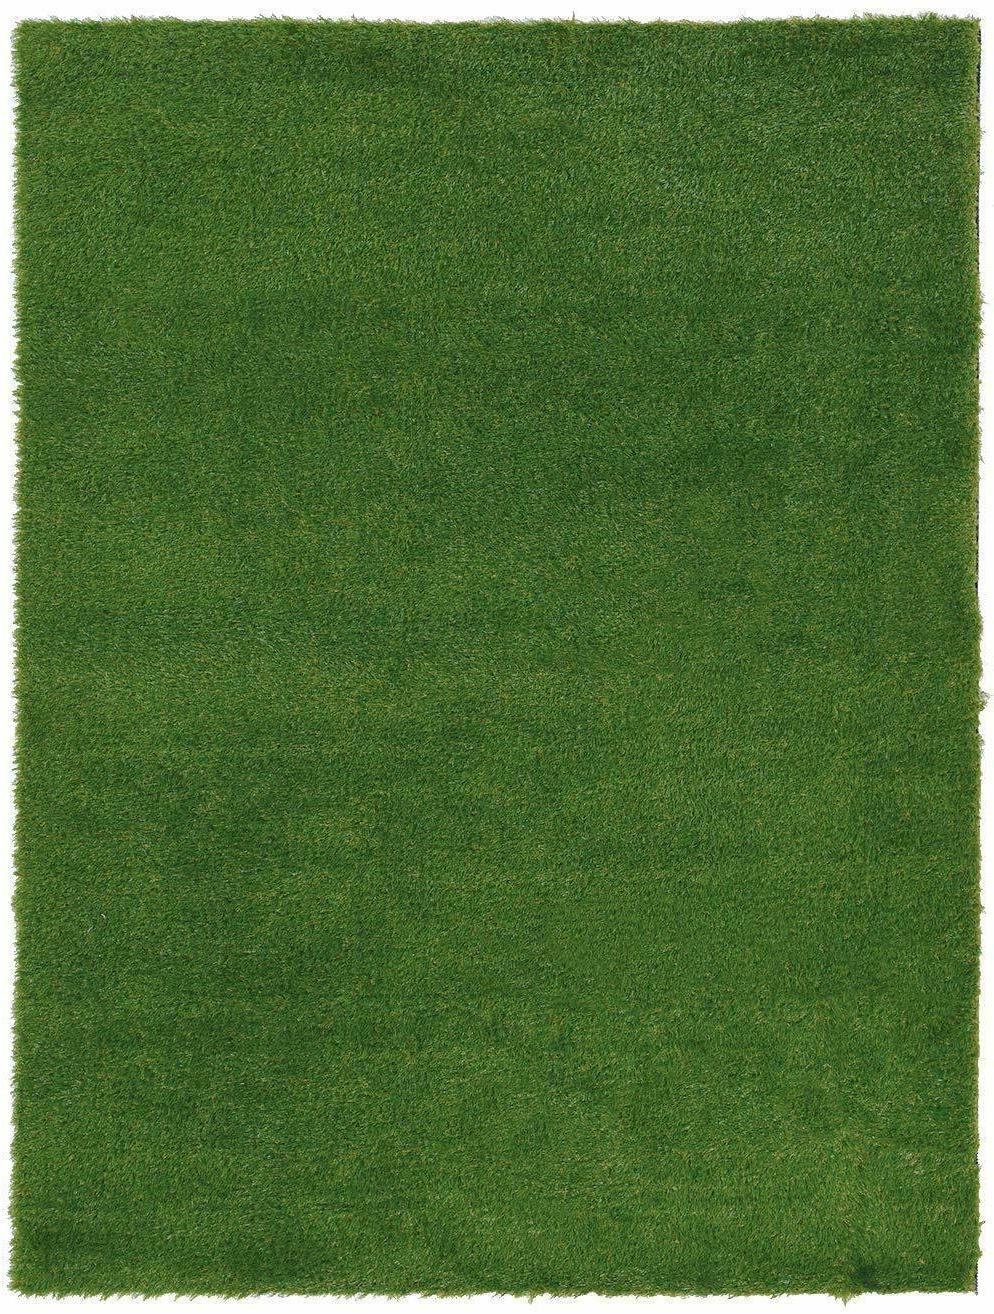 Koeckritz Rugs Fake Lawn Artificial Grass Tough Turf w/Drain